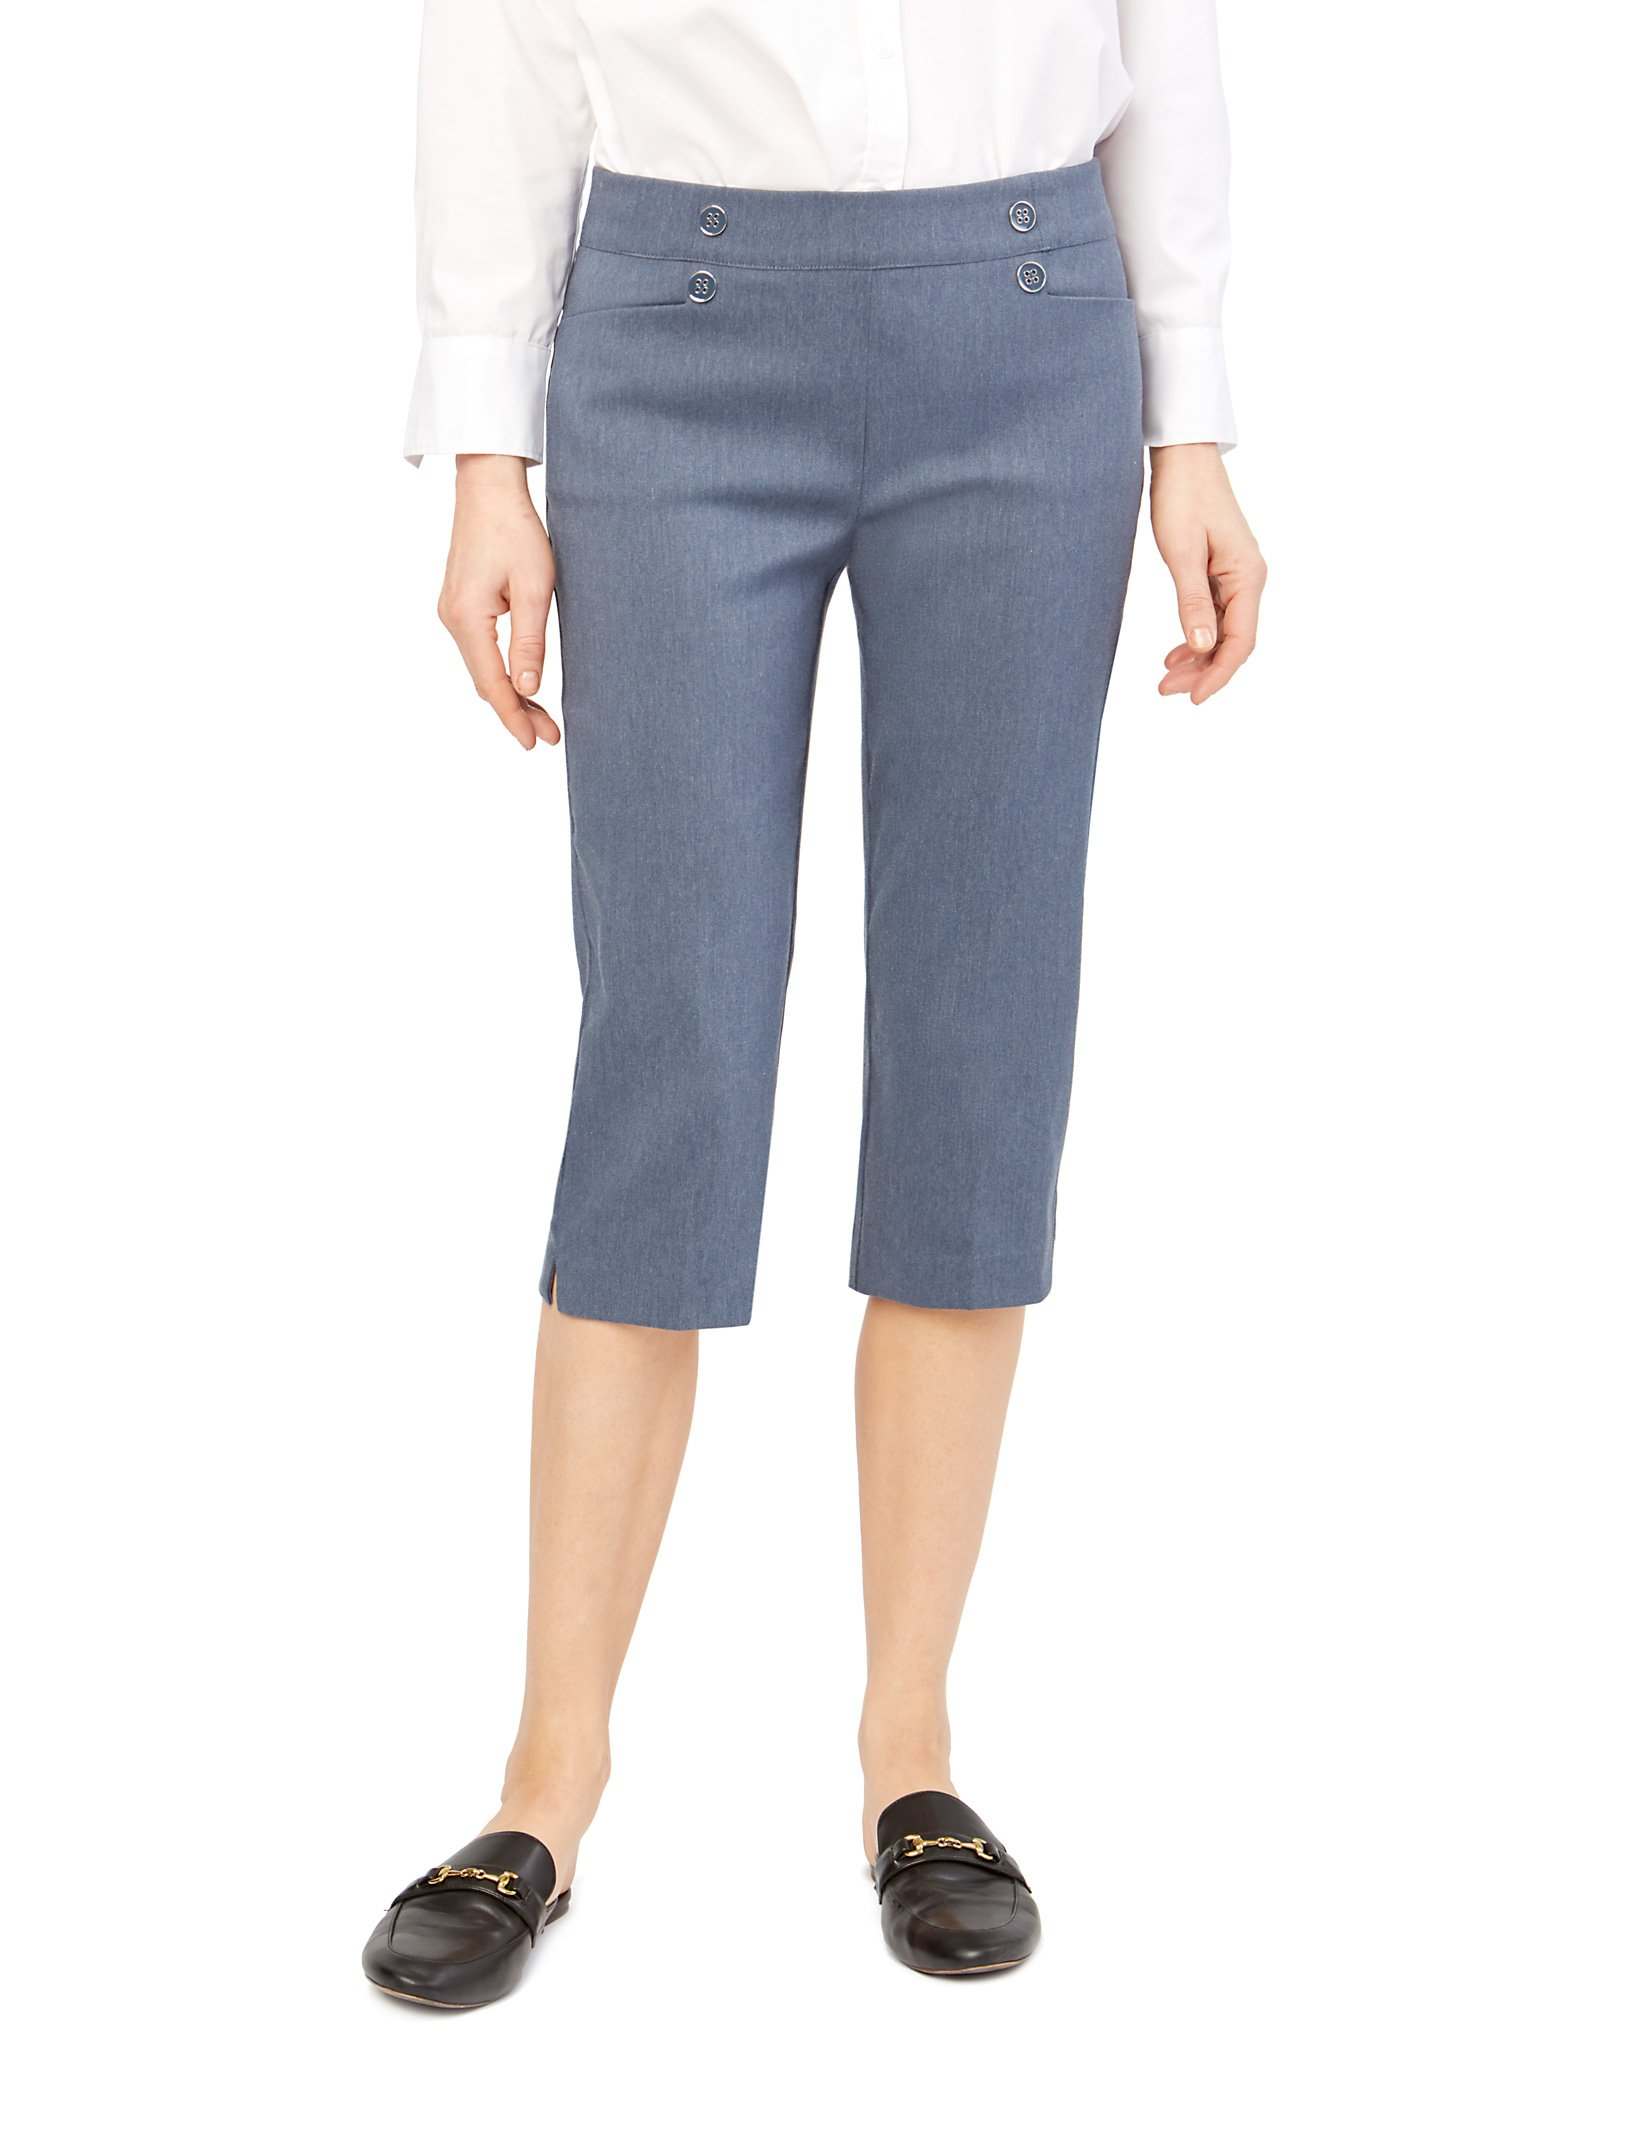 89th & Madison Women's Button Front Easy Fit Capri, Indochine Blue, X-Large